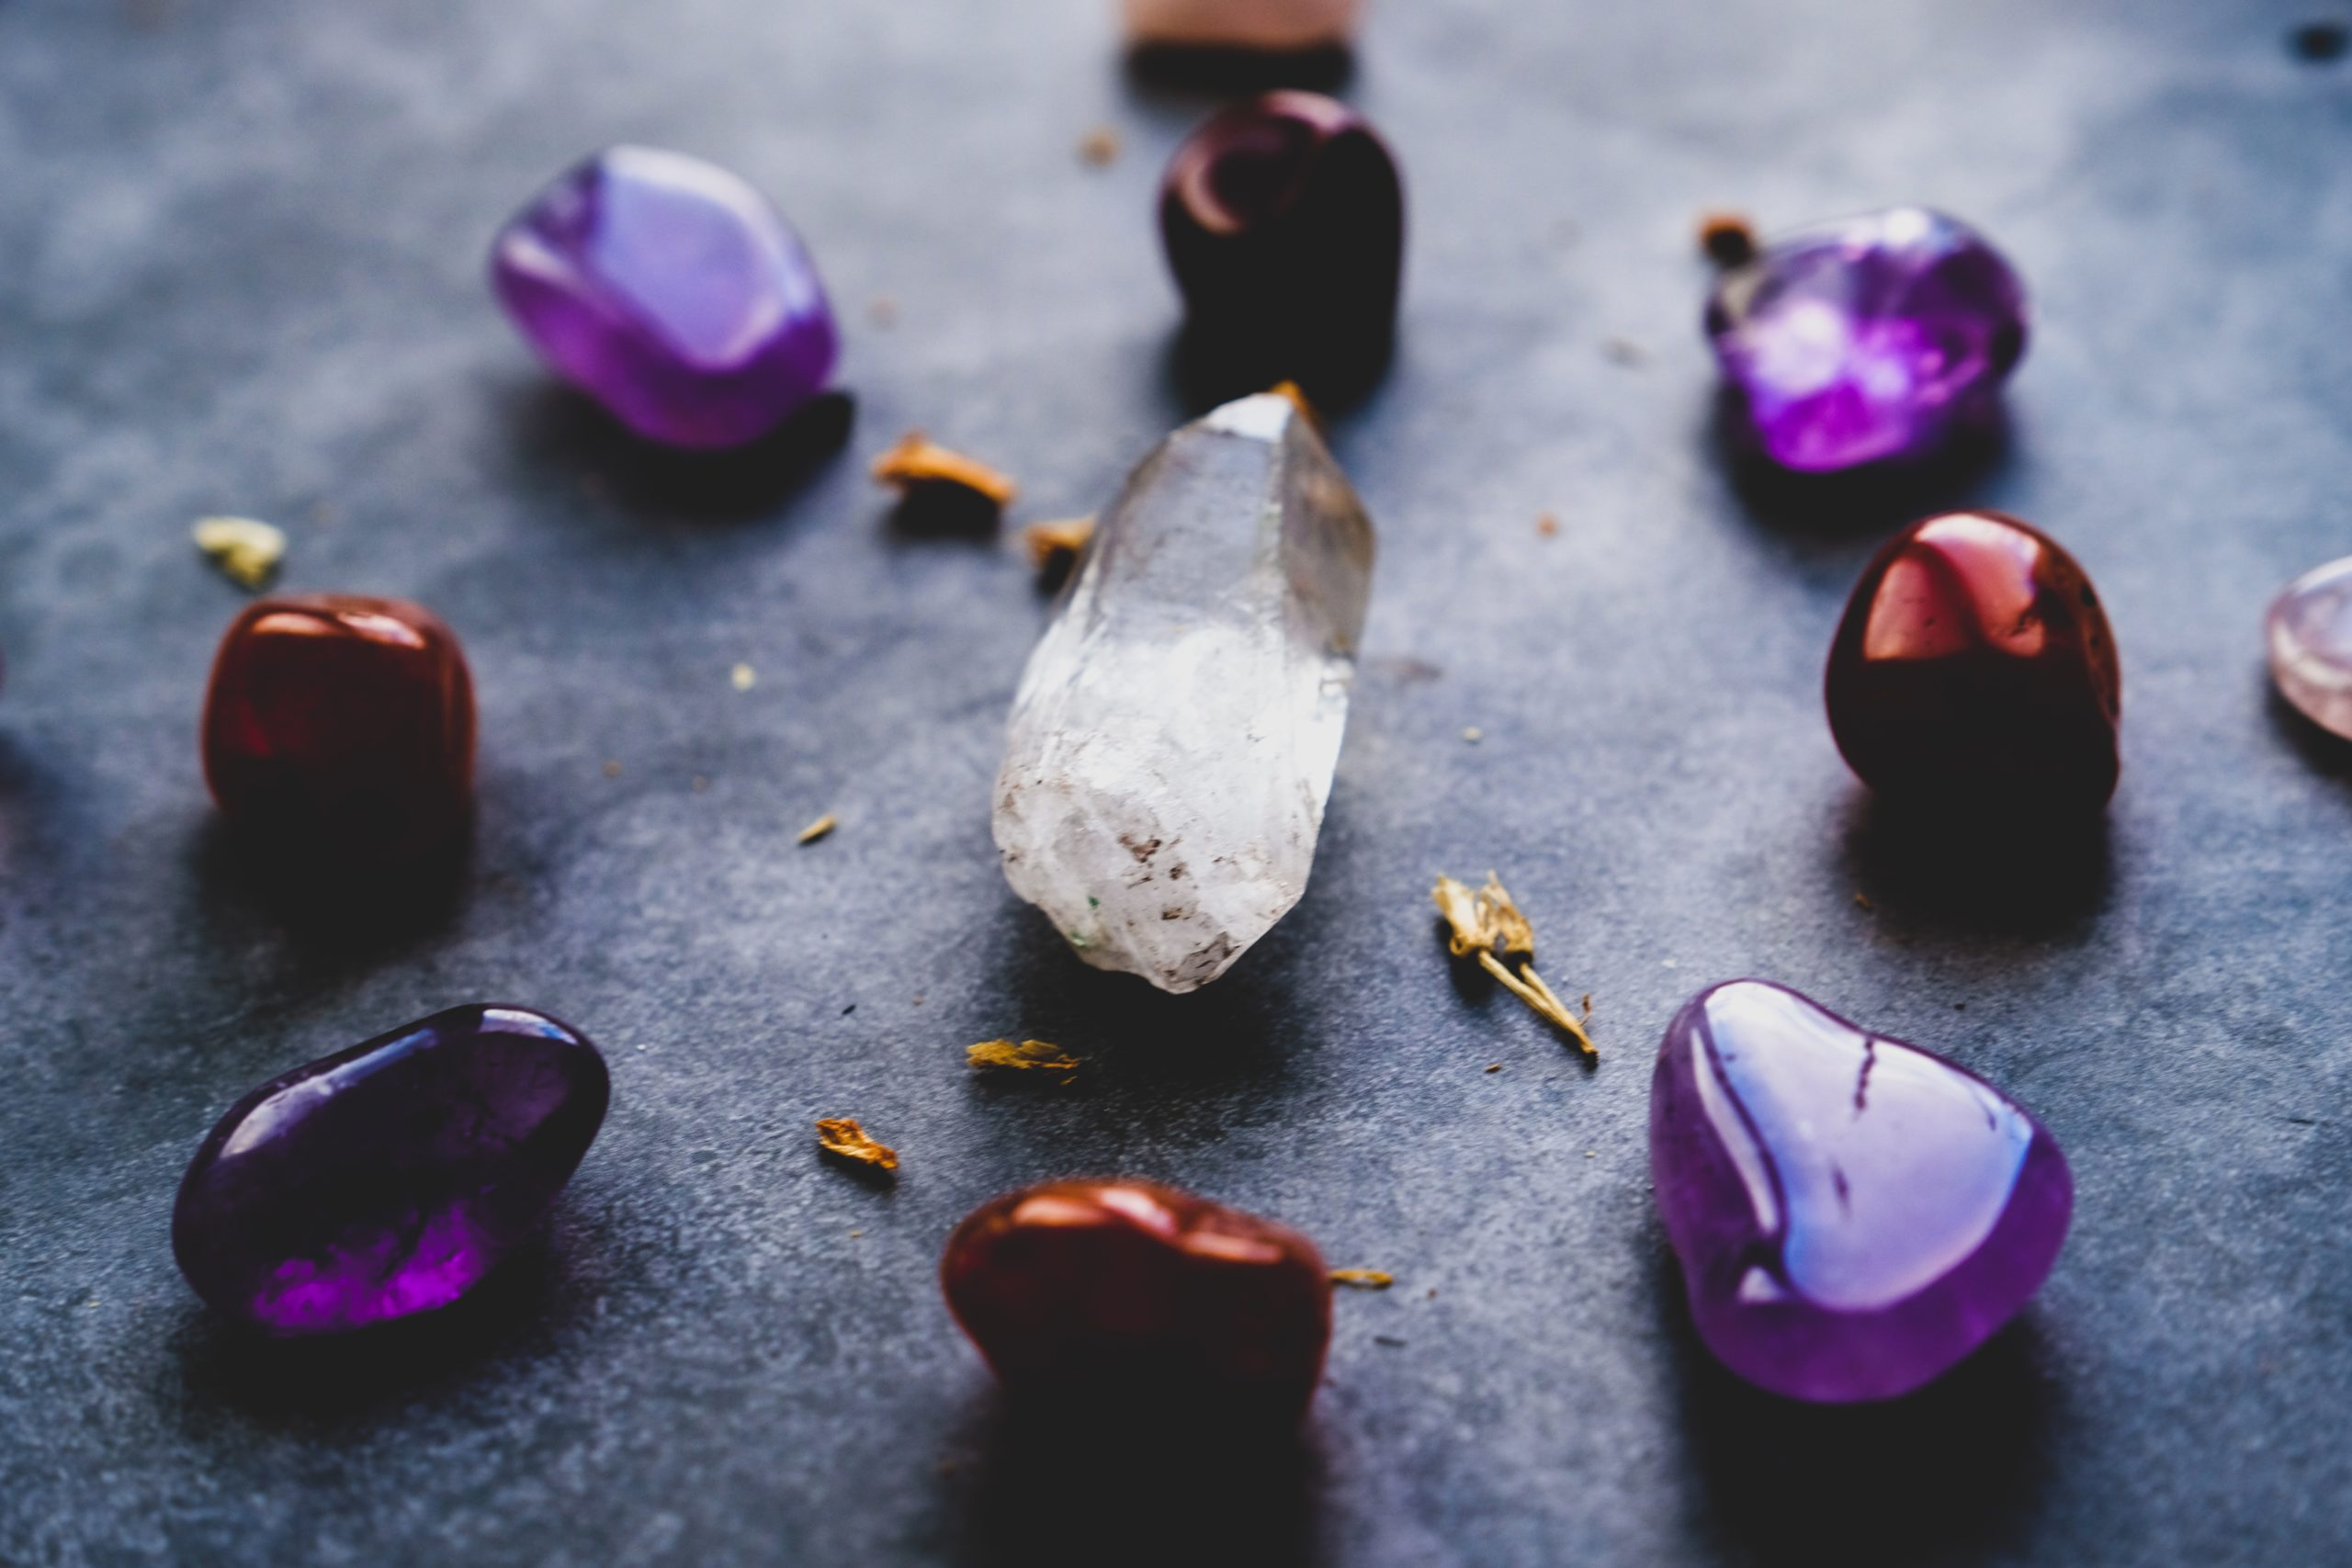 Crystals for healing purposes